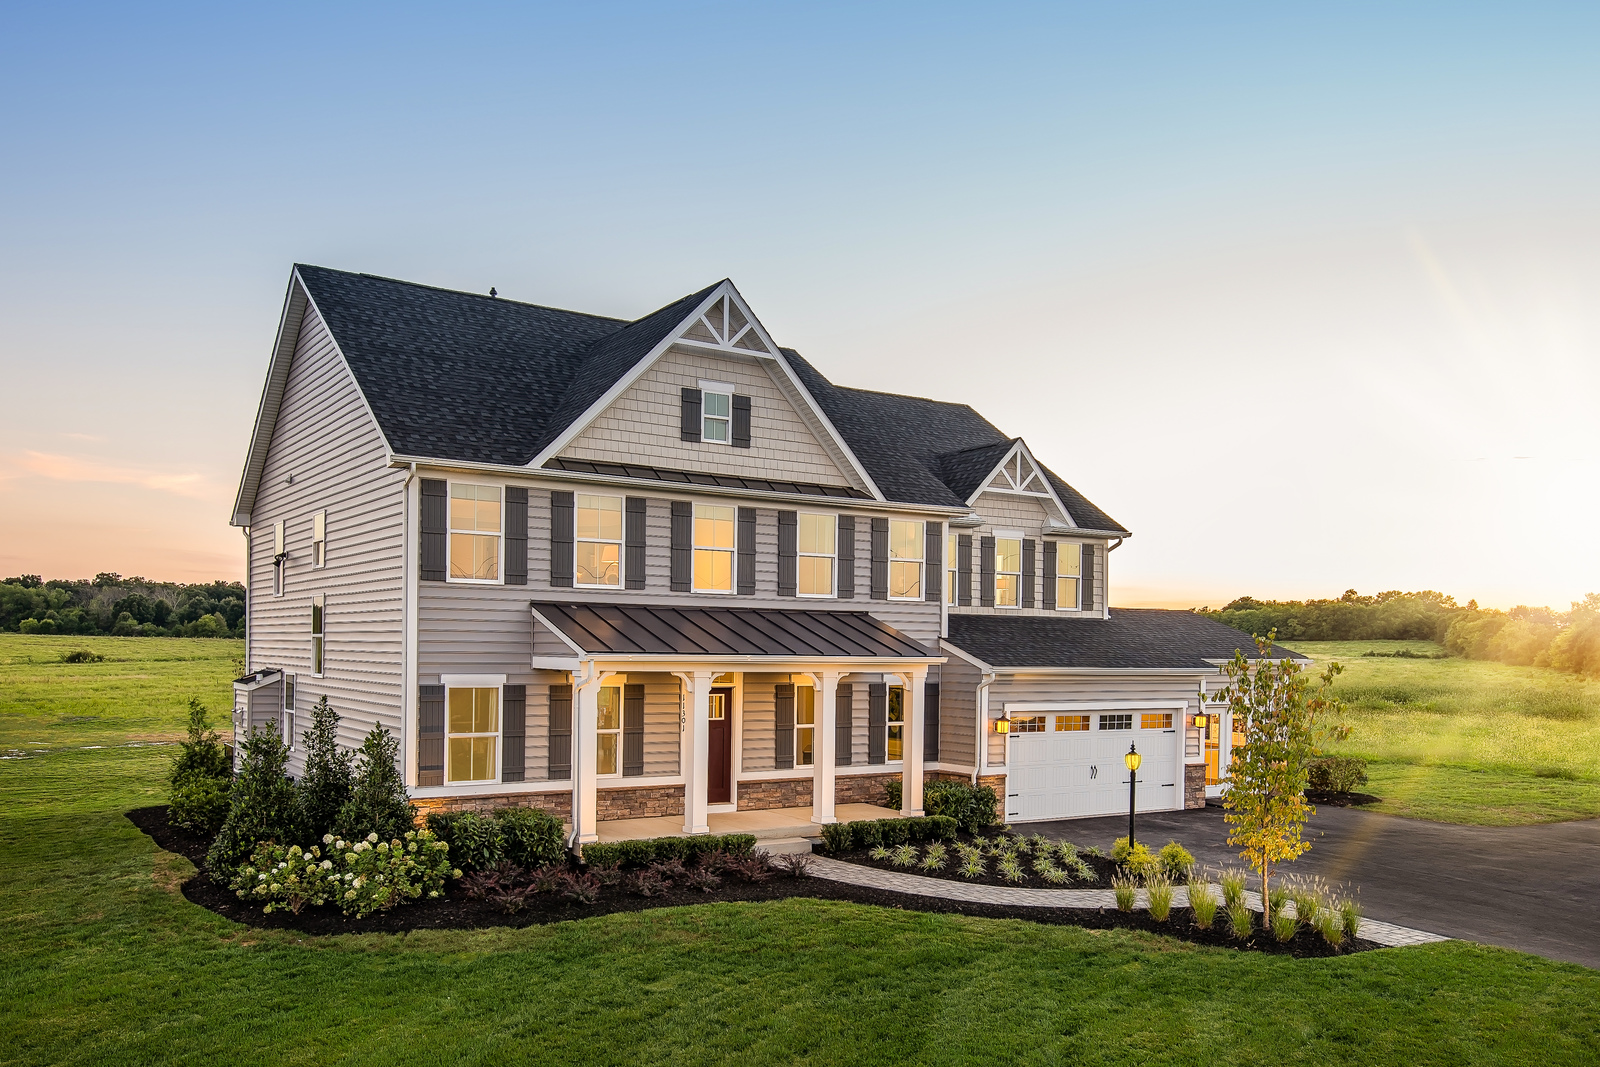 New Homes For Sale At Bradford Walk At Buck Hill Farm In West